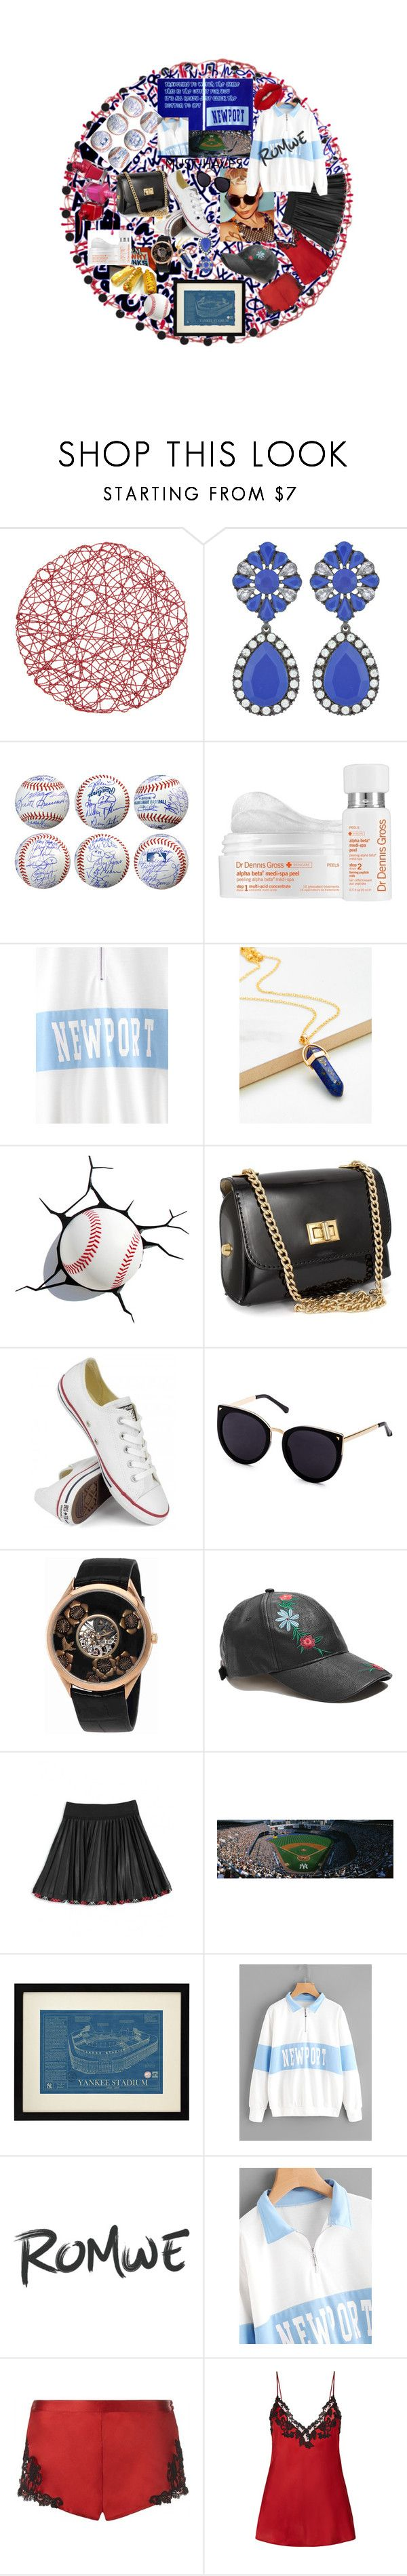 """""""ROMWE-Wim 30$ coupon"""" by carriearmstrong269 ❤ liked on Polyvore featuring Dr. Dennis Gross Skincare, Converse, Vacheron Constantin, GUESS, Monnalisa, La Perla and Lime Crime"""